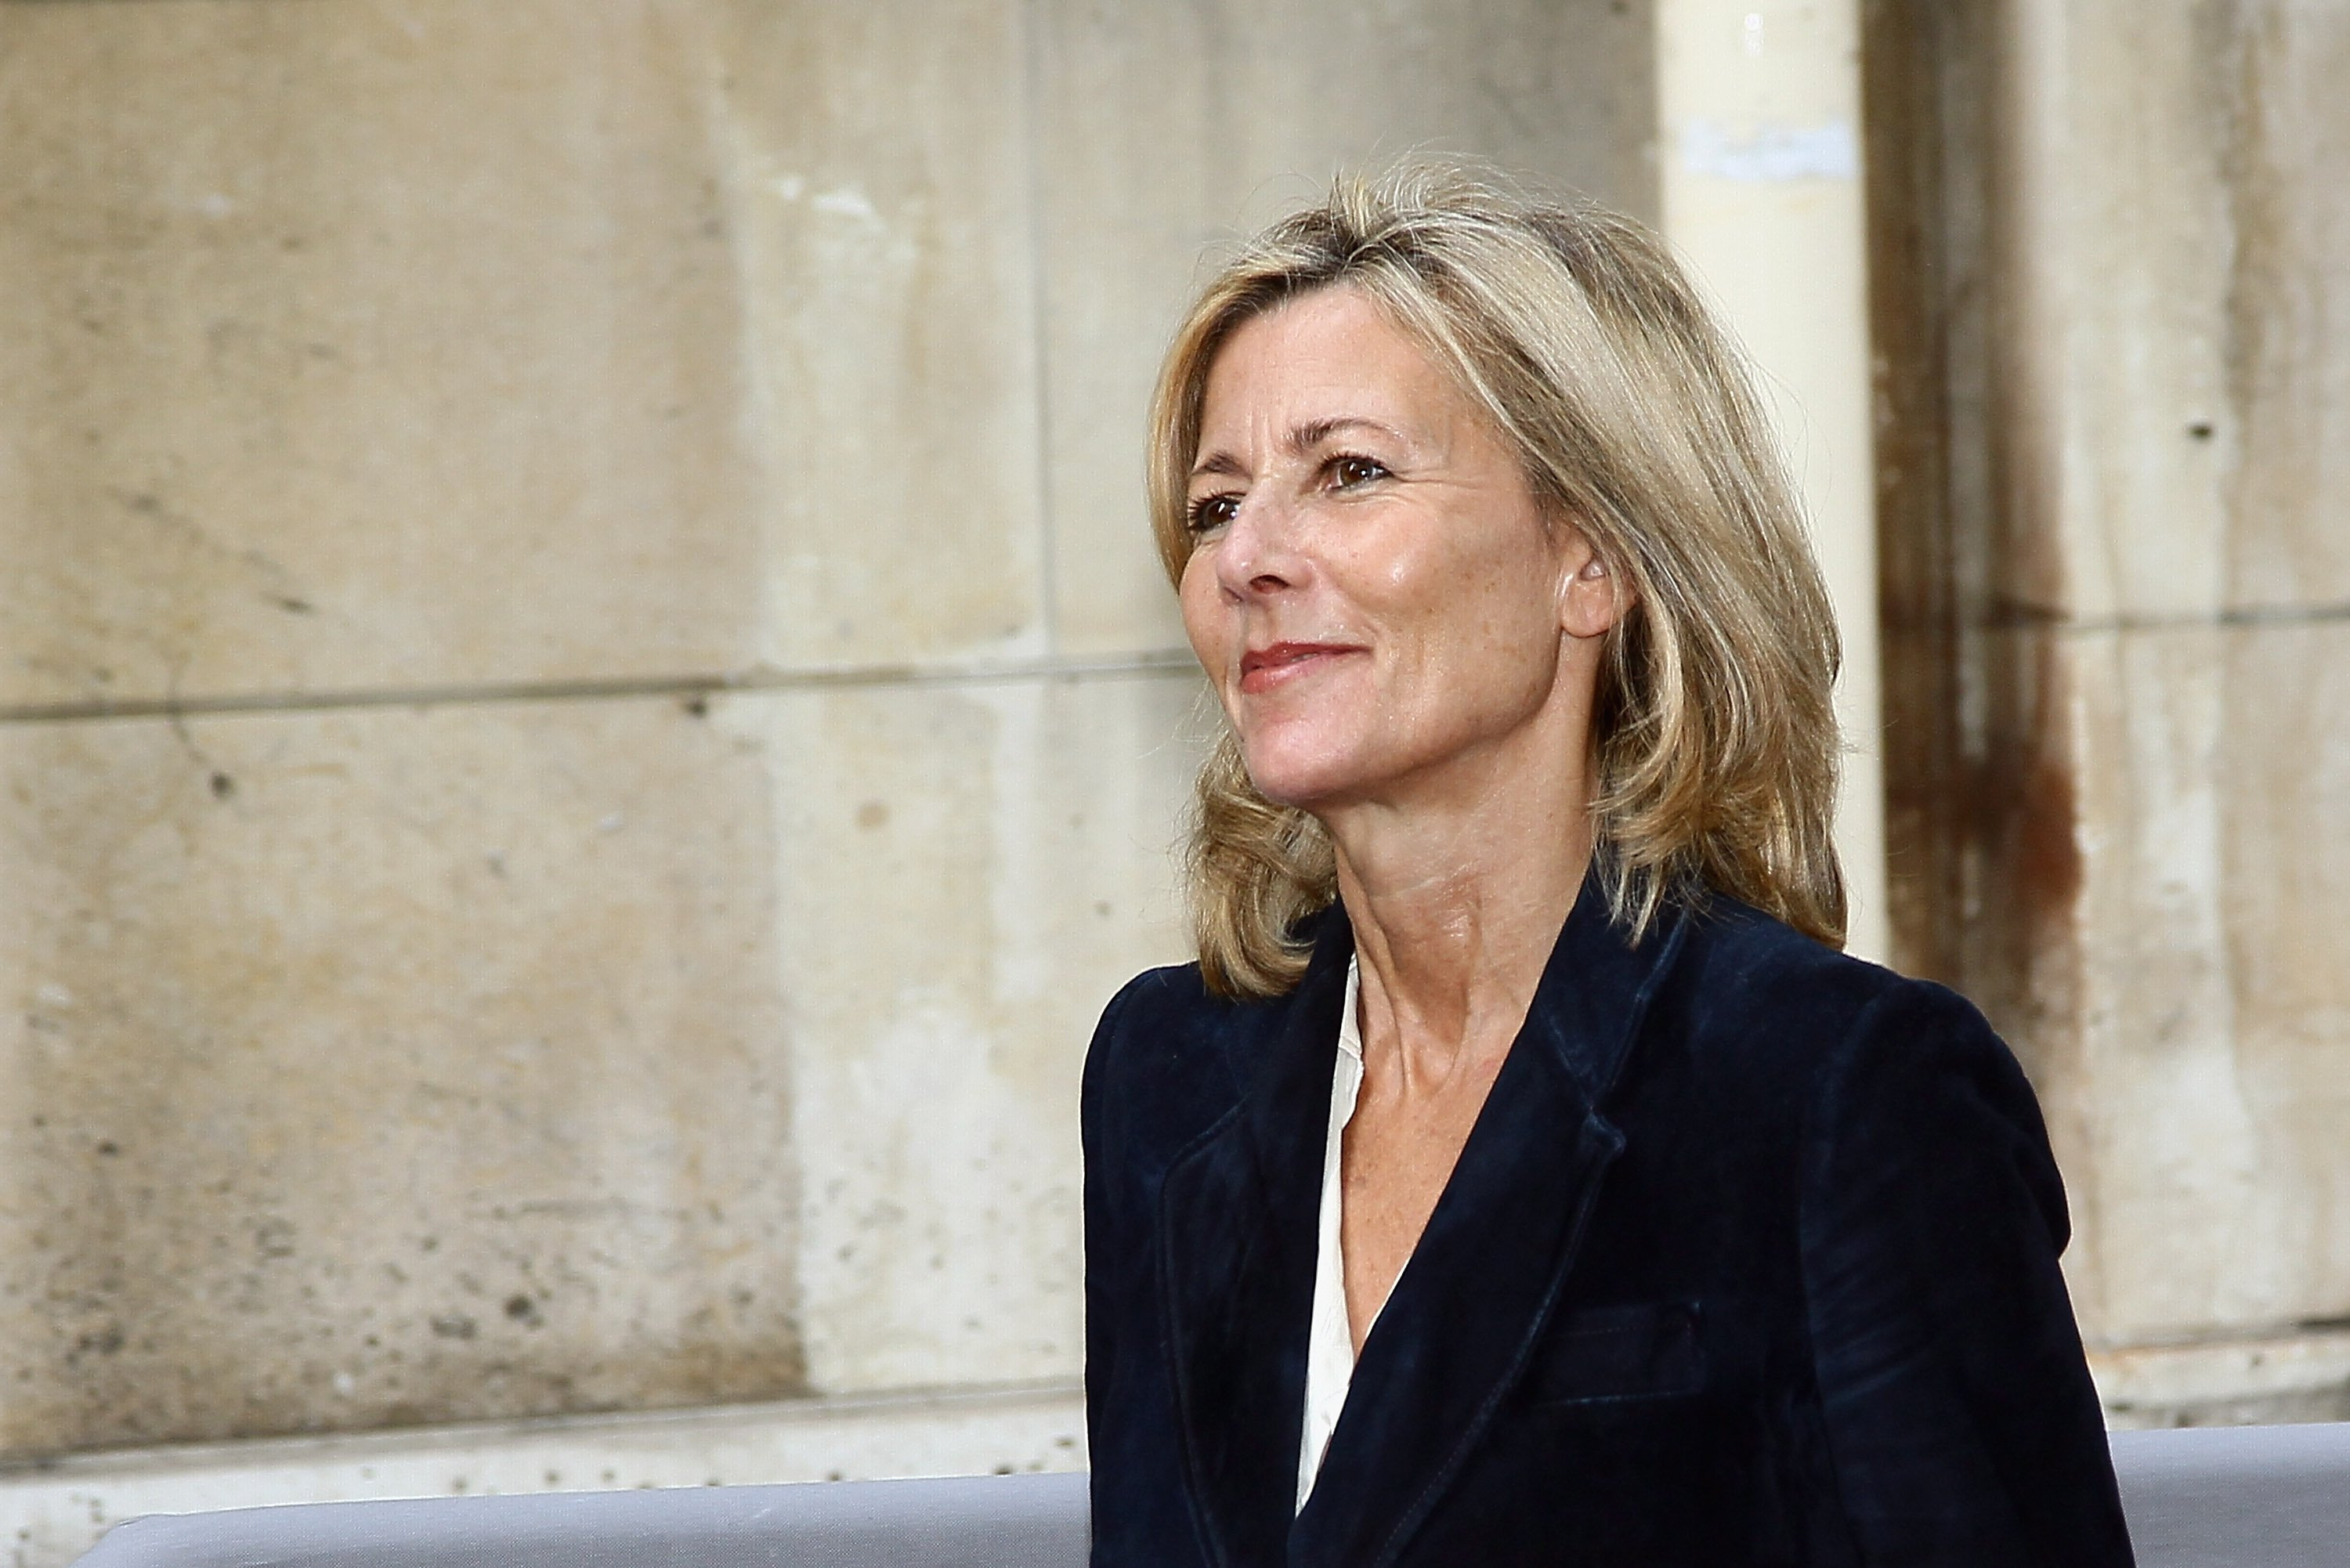 Claire Chazal le 2 juillet 2012 à Paris, France | Photo : GettyImages